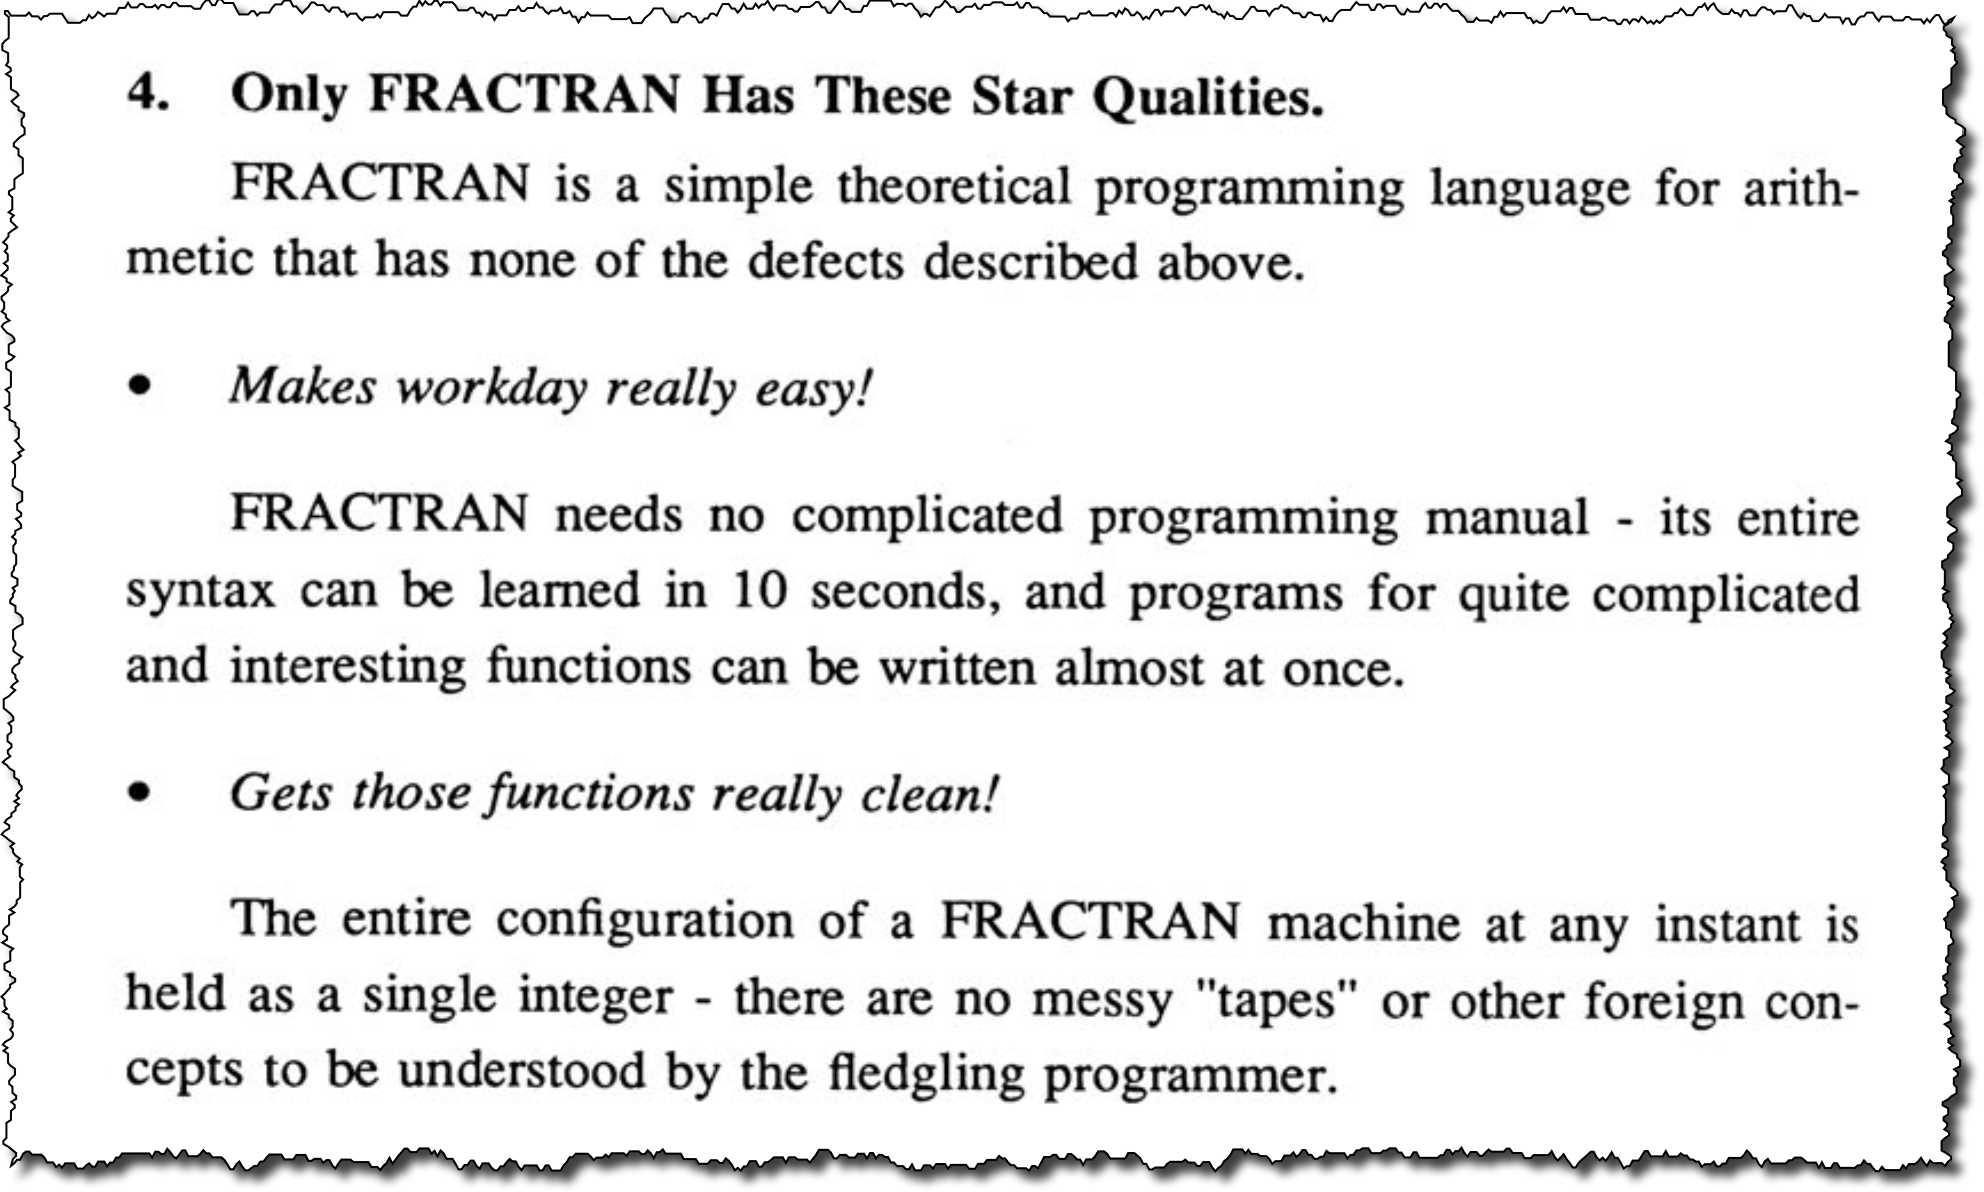 Only FRACTRAN has these star qualities